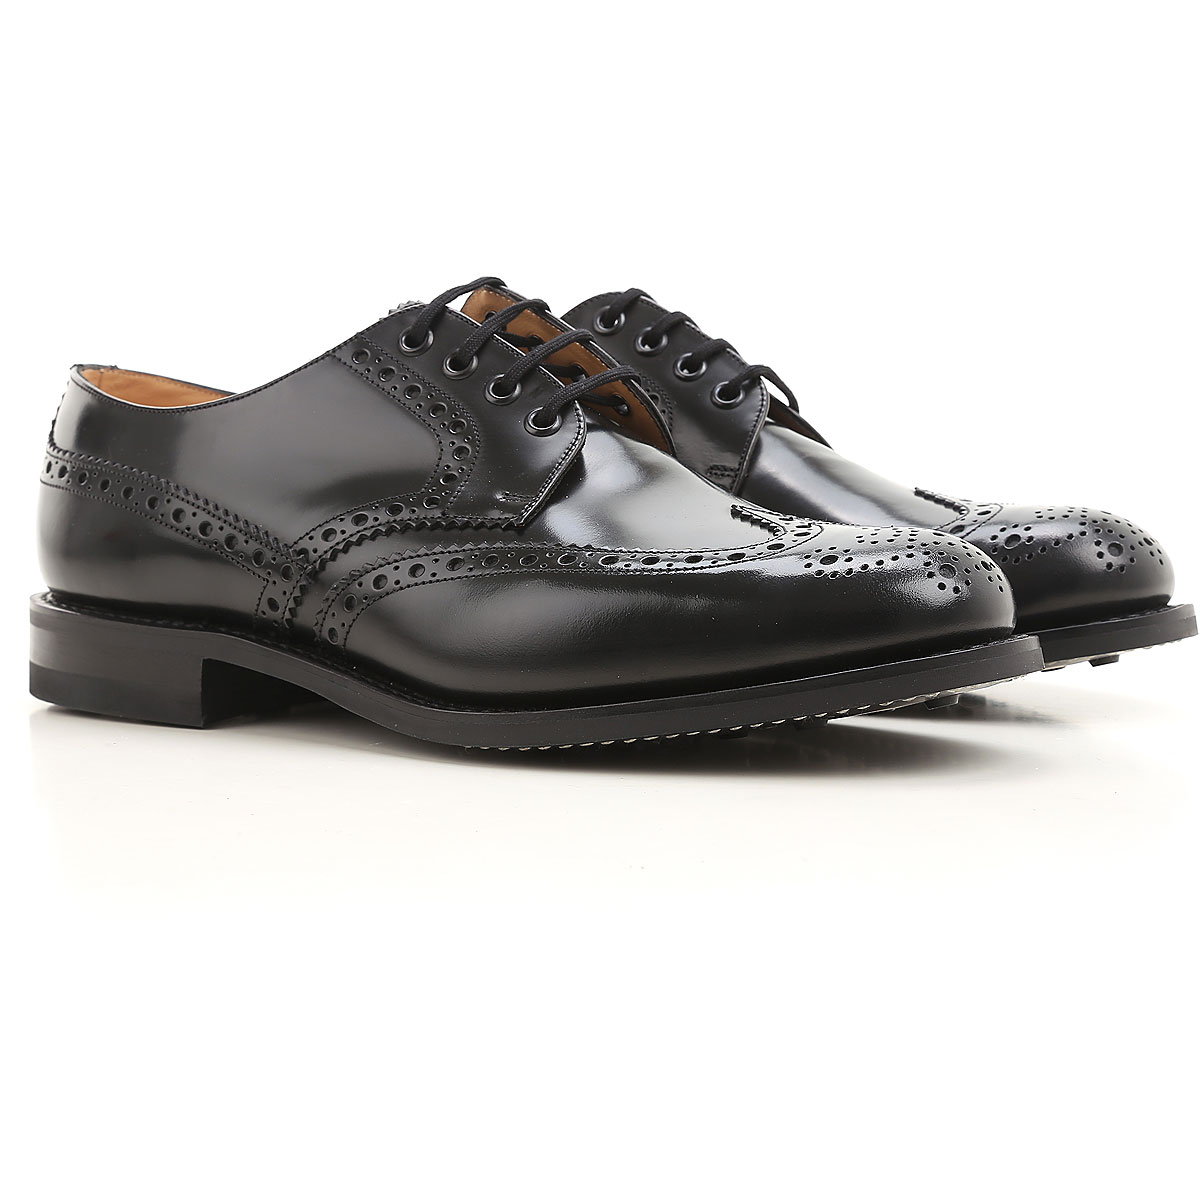 Image of Church's Lace Up Shoes for Men Oxfords, Derbies and Brogues, Black, Leather, 2017, 10 10.5 11 7 7.5 8 8.5 9 9.5